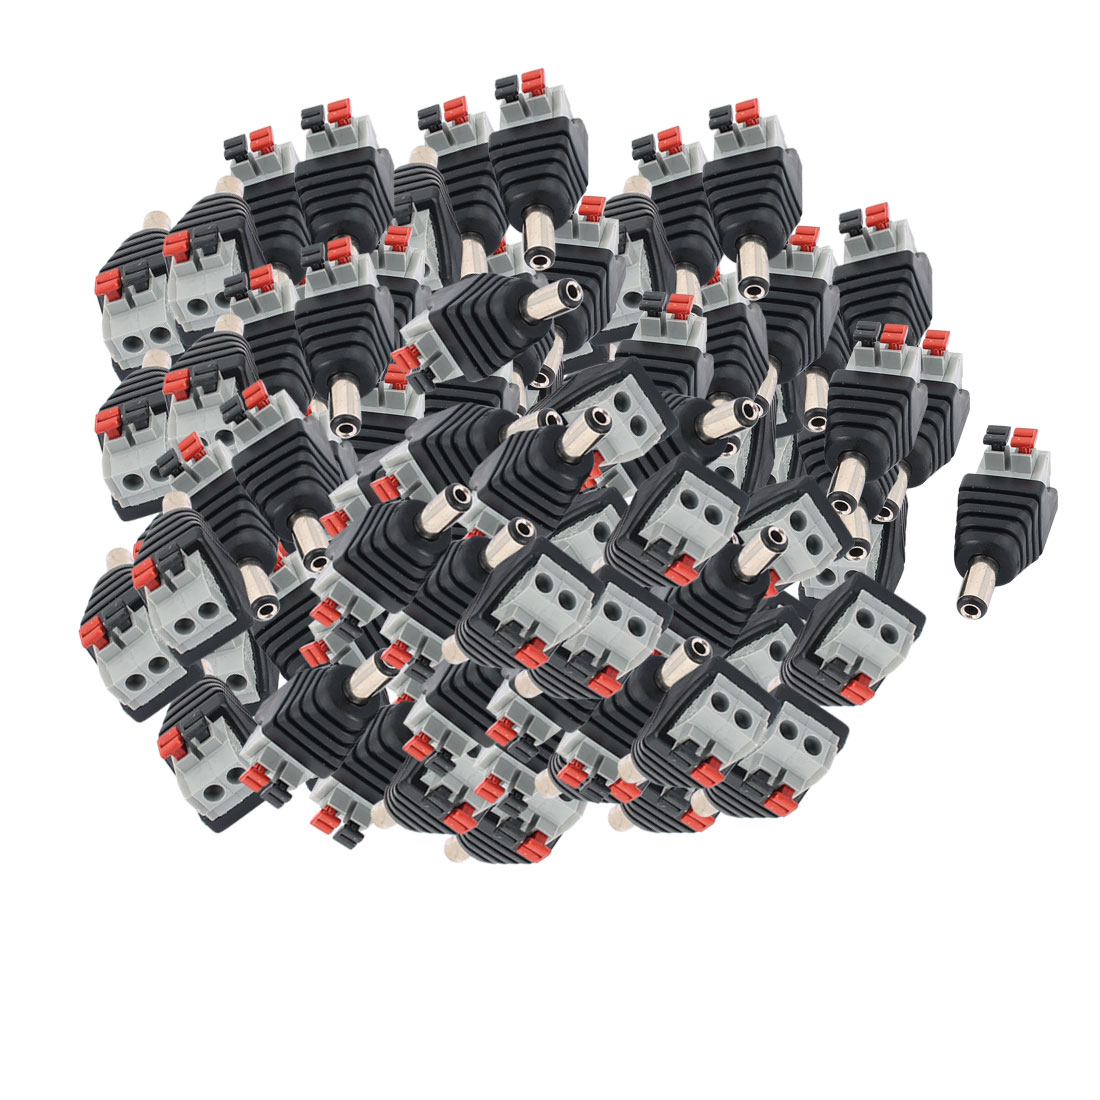 100Pcs CCTV Camera Clip Type Terminal Block 2.1x5.5mm DC Power Male Jack Connector